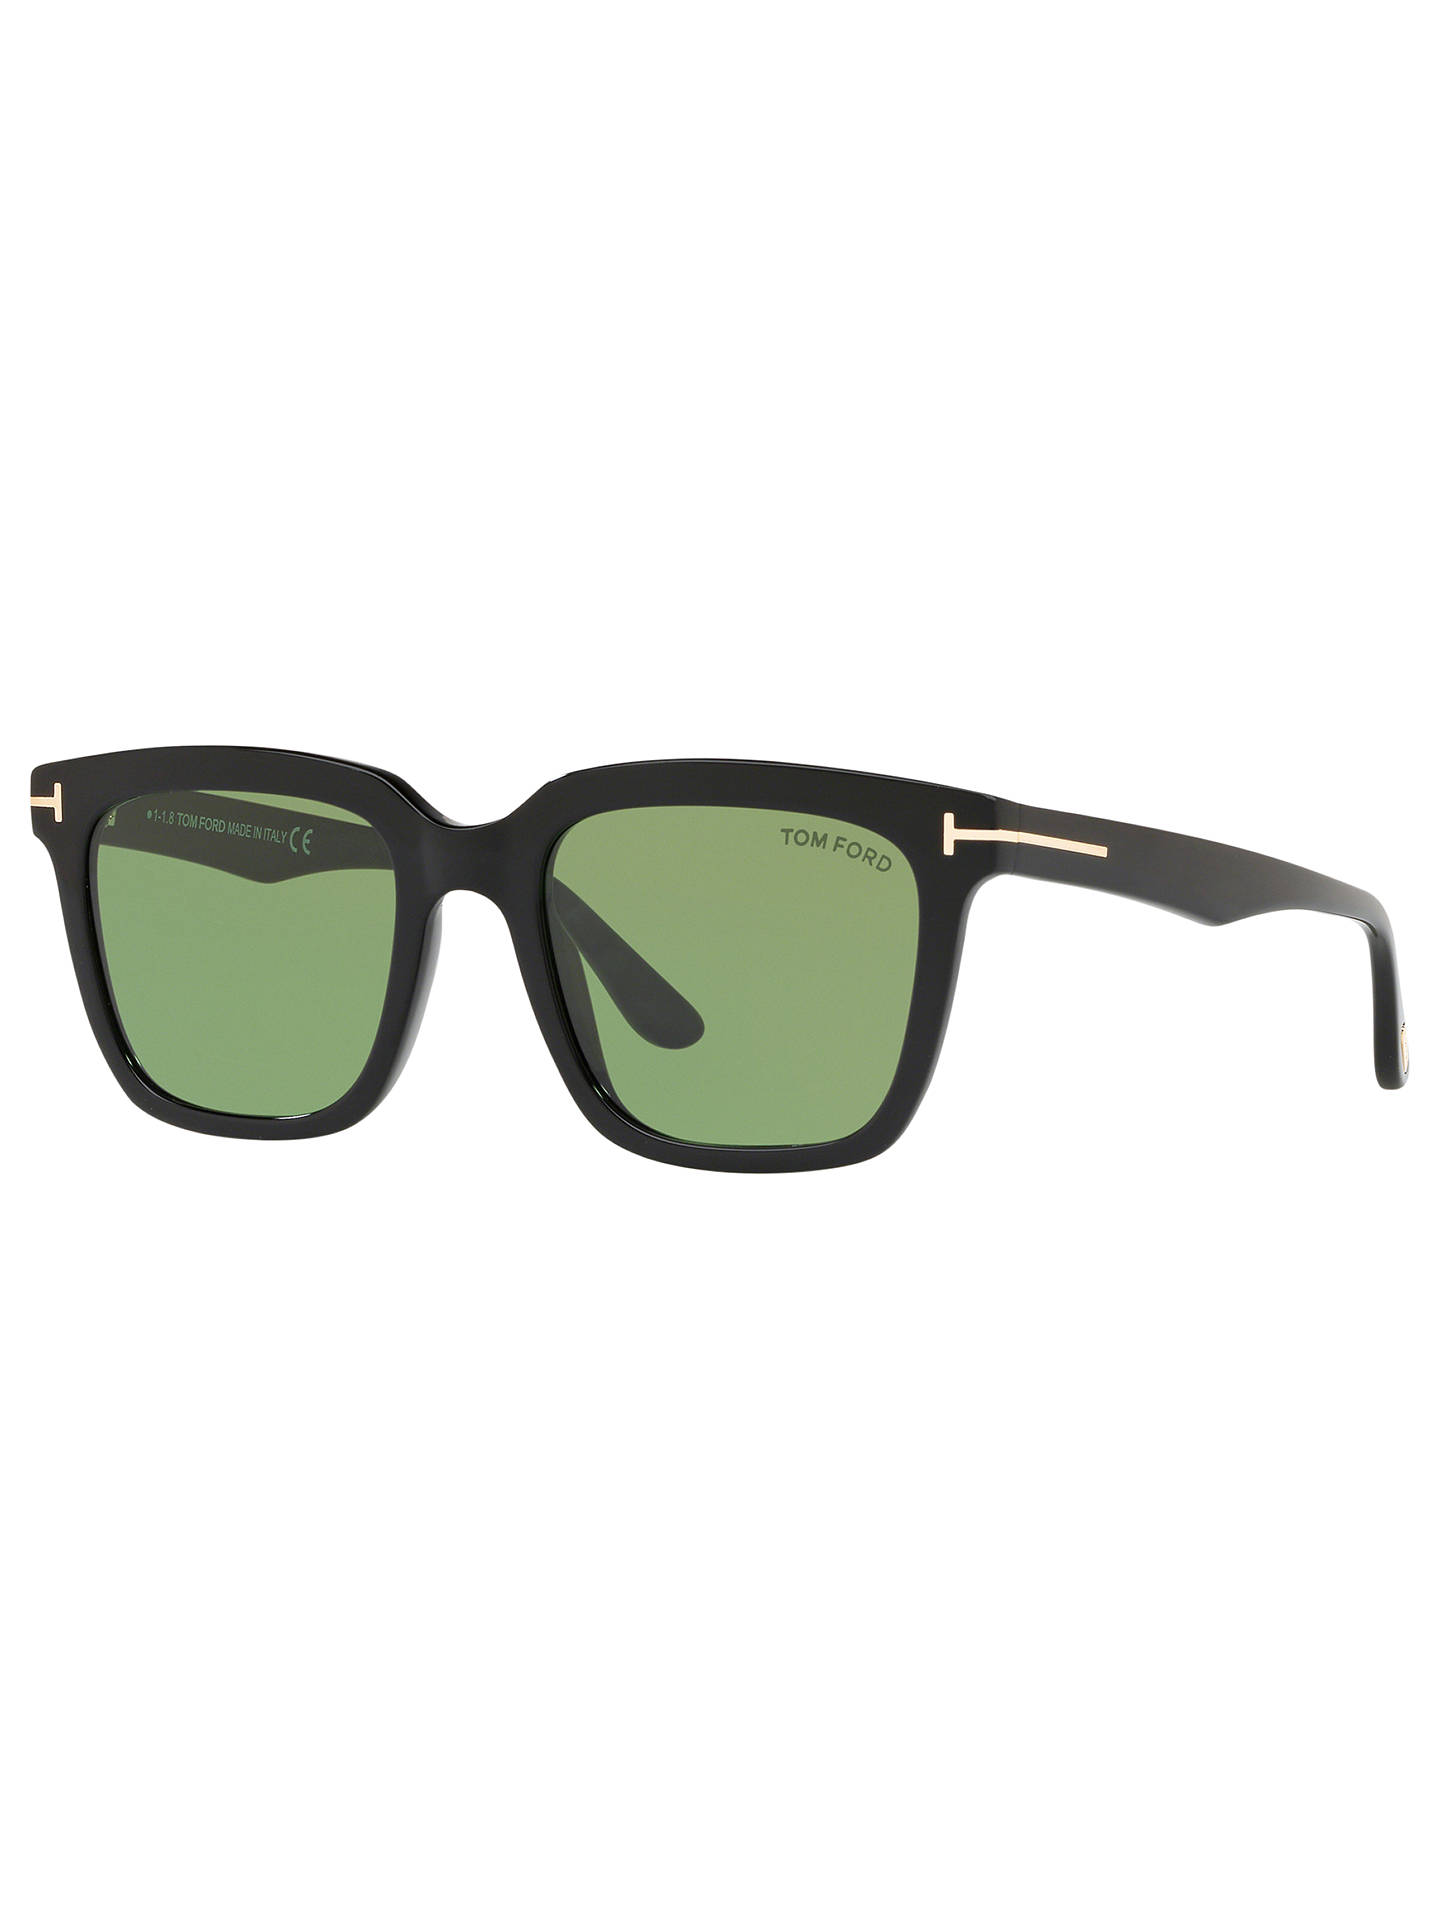 cc05dc61f92 TOM FORD FT0646 Men s Marco Rectangular Sunglasses at John Lewis ...